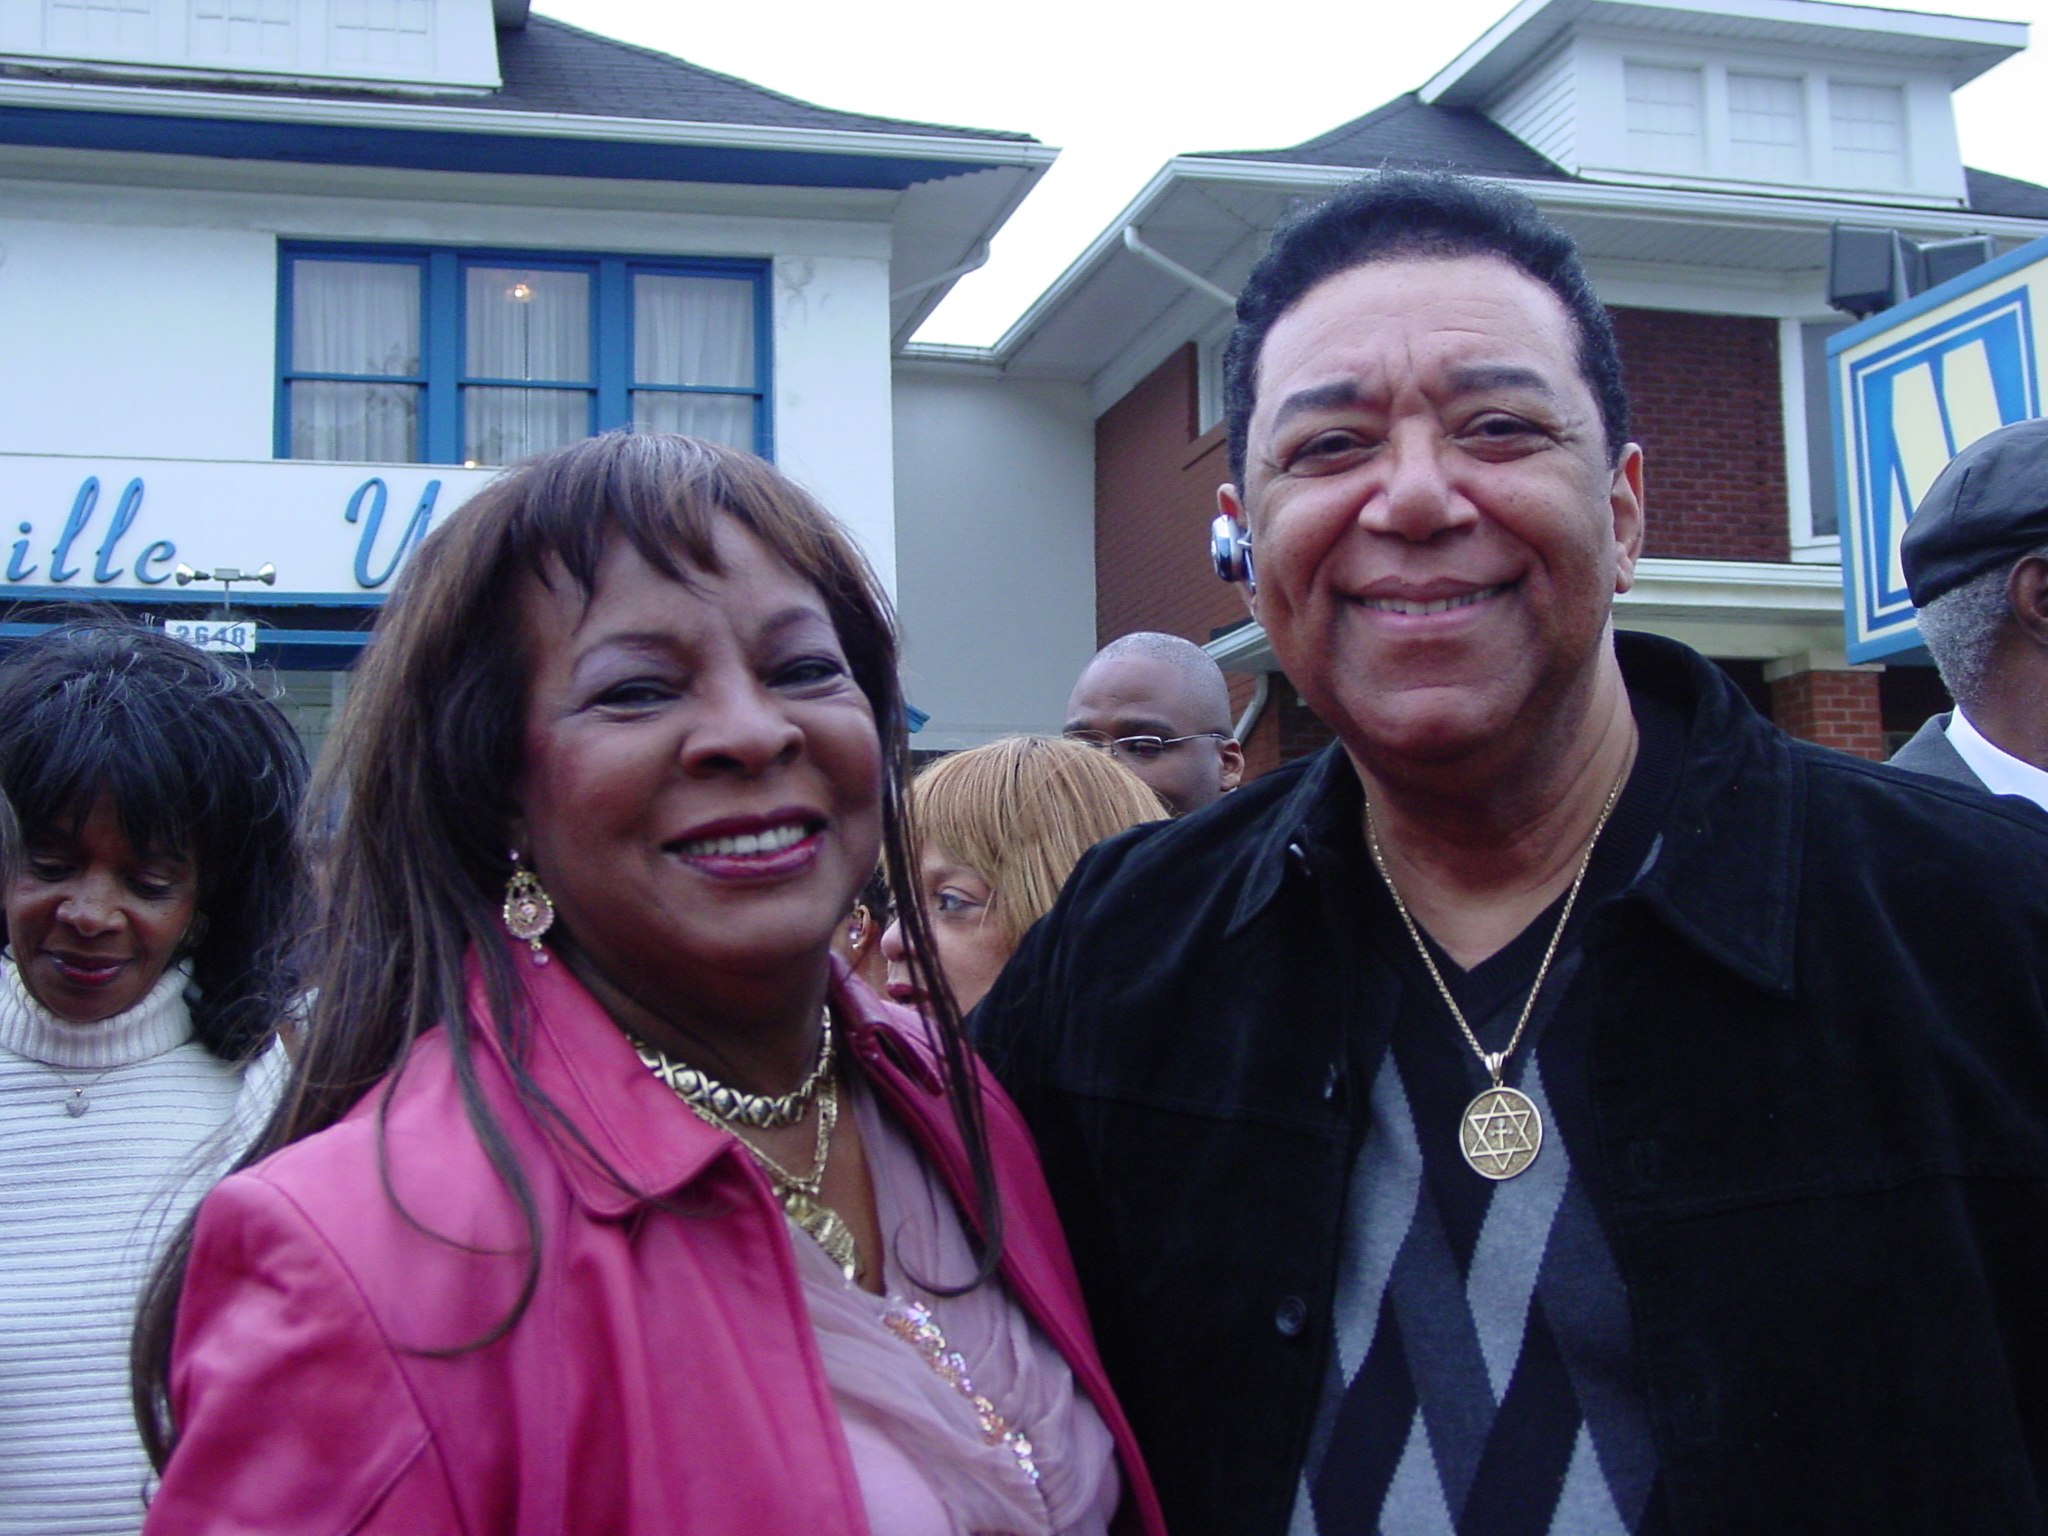 Martha Reeves - Motown 50 Celebration and Barry Gordy Jr. Blvd. dedication